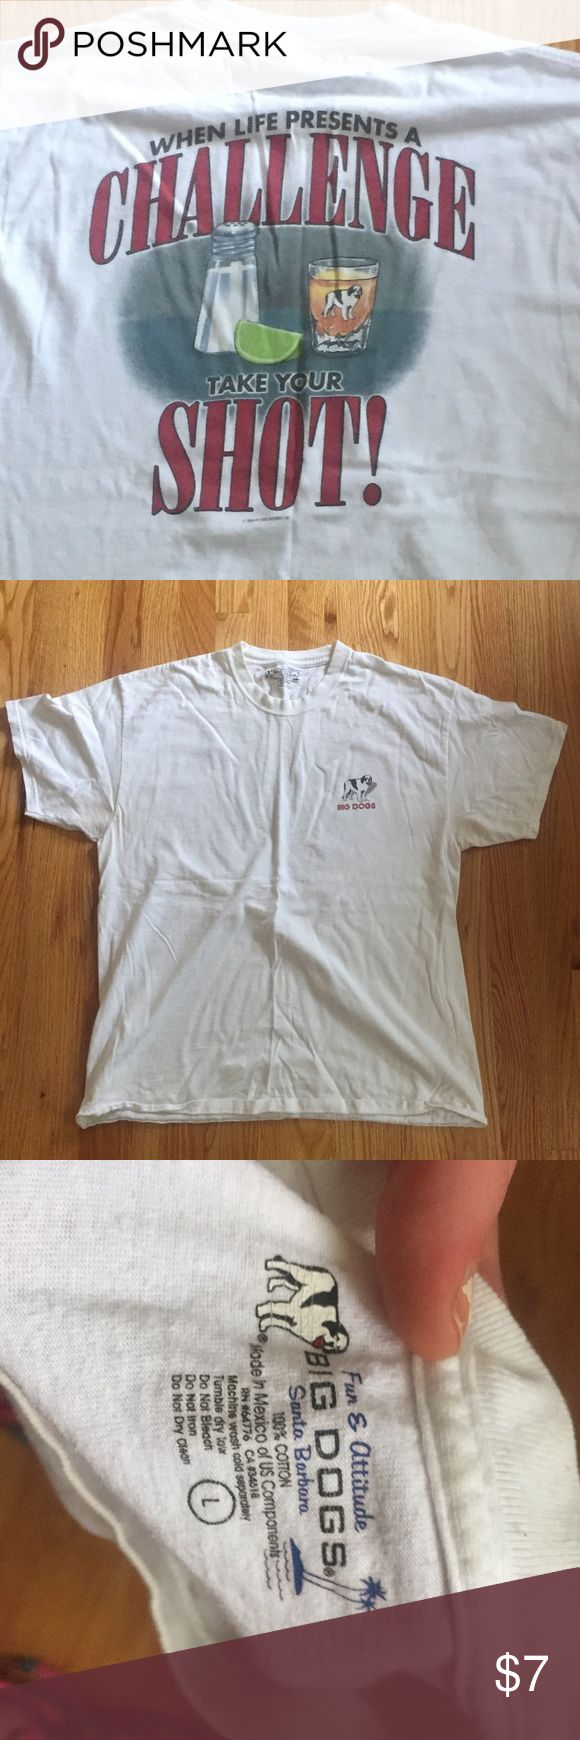 """Big Dogs """"Take Your Shot"""" T-Shirt White t-shirt from Big Dogs. Front has small Big Dogs logo in the corner. Back says """"when life presents a challenge, take your shot"""". Gently used and in good condition. Big Dogs Shirts Tees - Short Sleeve"""